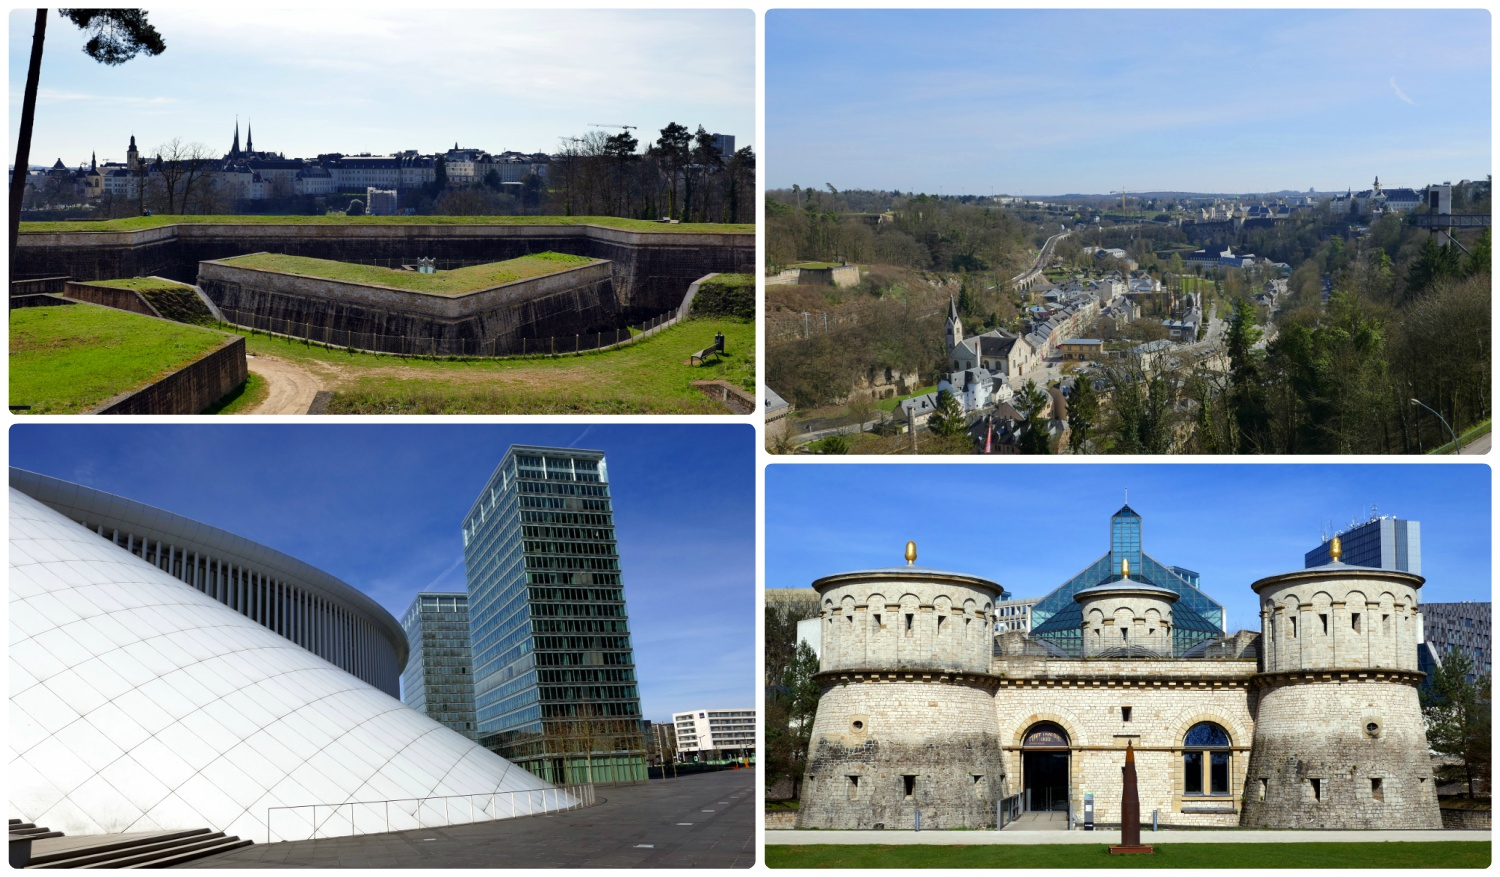 Luxembourg City, Luxembourg. Clockwise (from the top left): Foundation walls at Fort Thüngen, a view of the city on our walk to MUDAM, Orchestre Philharmonie Luxembourg, Fort Thüngen.